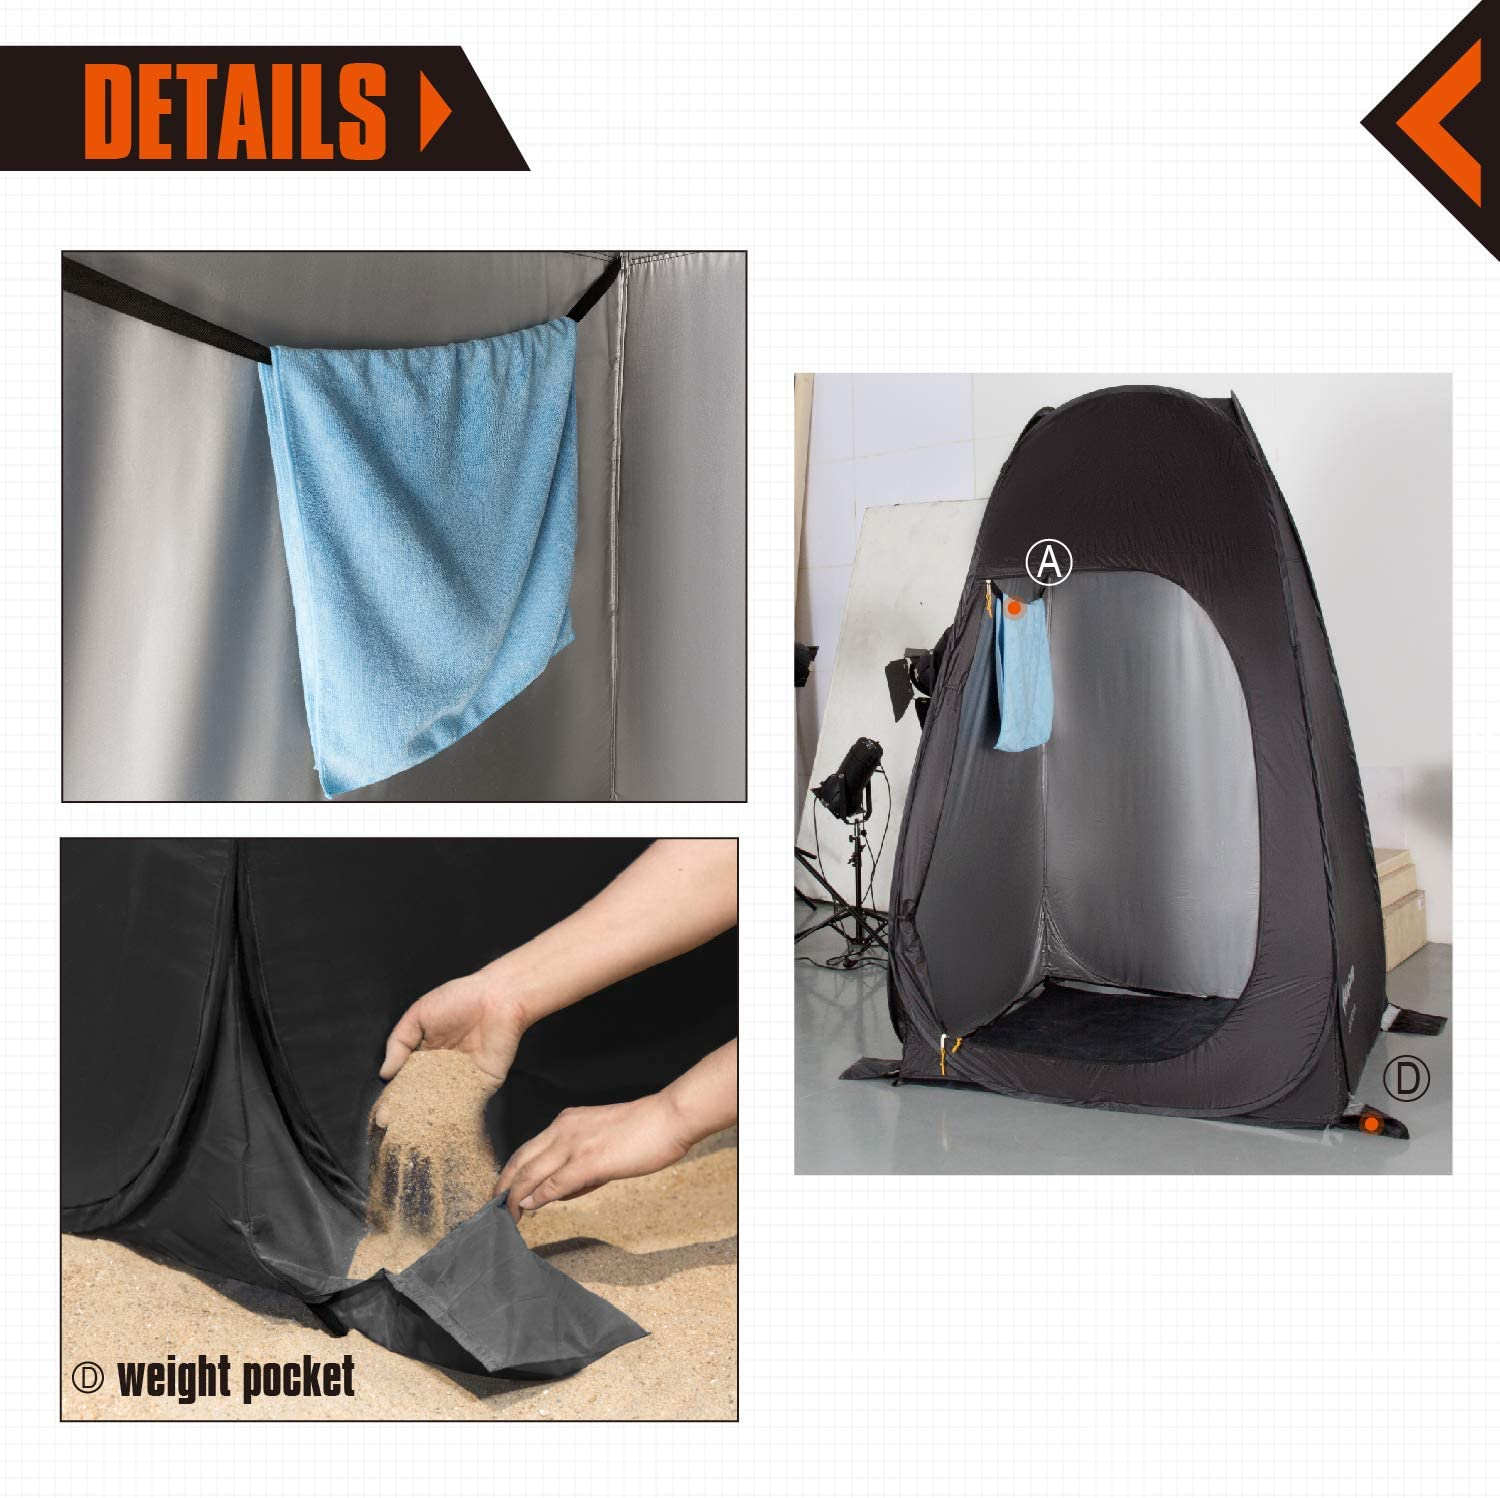 KingCamp Pop Up Dressing Changing Tent Shower Room Detachable Floor for Camping Outdoor Beach Toilet Portable with Carry Bag: Sports & Outdoors